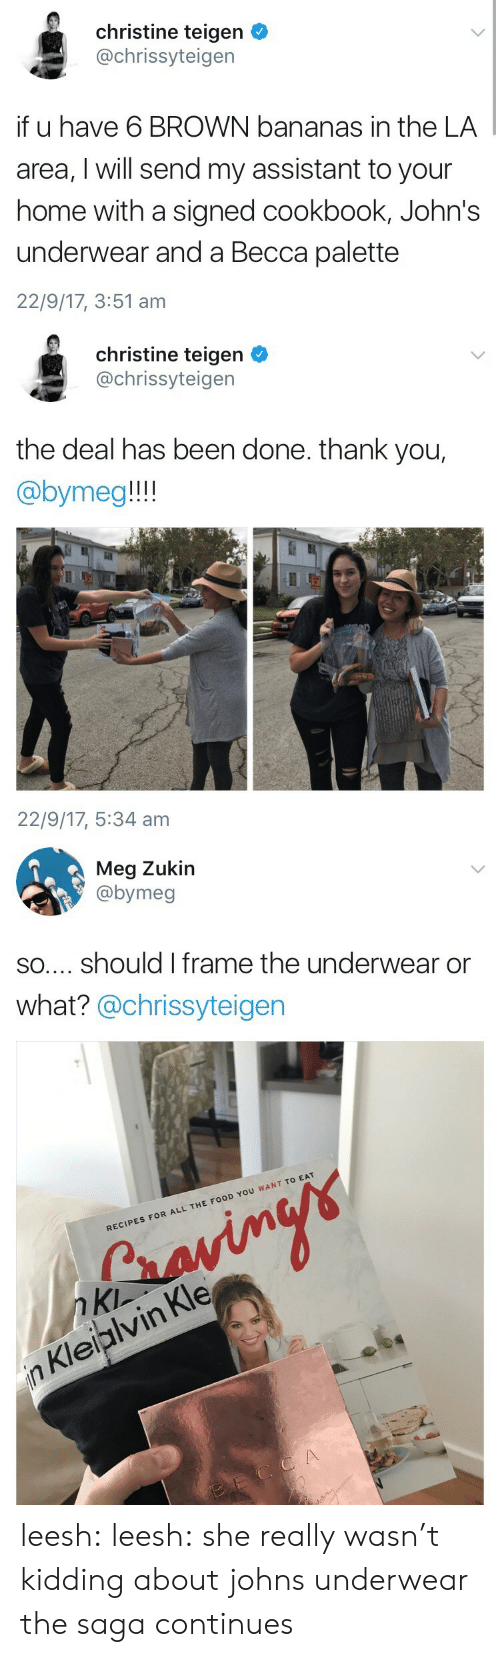 Food, Target, and Tumblr: christine teigen  @chrissyteigen  if u have 6 BROWN bananas in the LA  area, I will send my assistant to your  home with a signed cookbook, John's  underwear and a Becca palette  22/9/17, 3:51 am   christine teigen  @chrissyteigen  the deal has been done. thank you,  @bymeg!!!  22/9/17, 5:34 am   Meg Zukir  @bymeg  so.... should I frame the underwear or  what? @chrissyteiger  RECIPES FOR ALL THE FOOD YOU WANT TO EAT  n Kln  n Kleiplvin Kle leesh:  leesh:  she really wasn't kidding about johns underwear  the saga continues